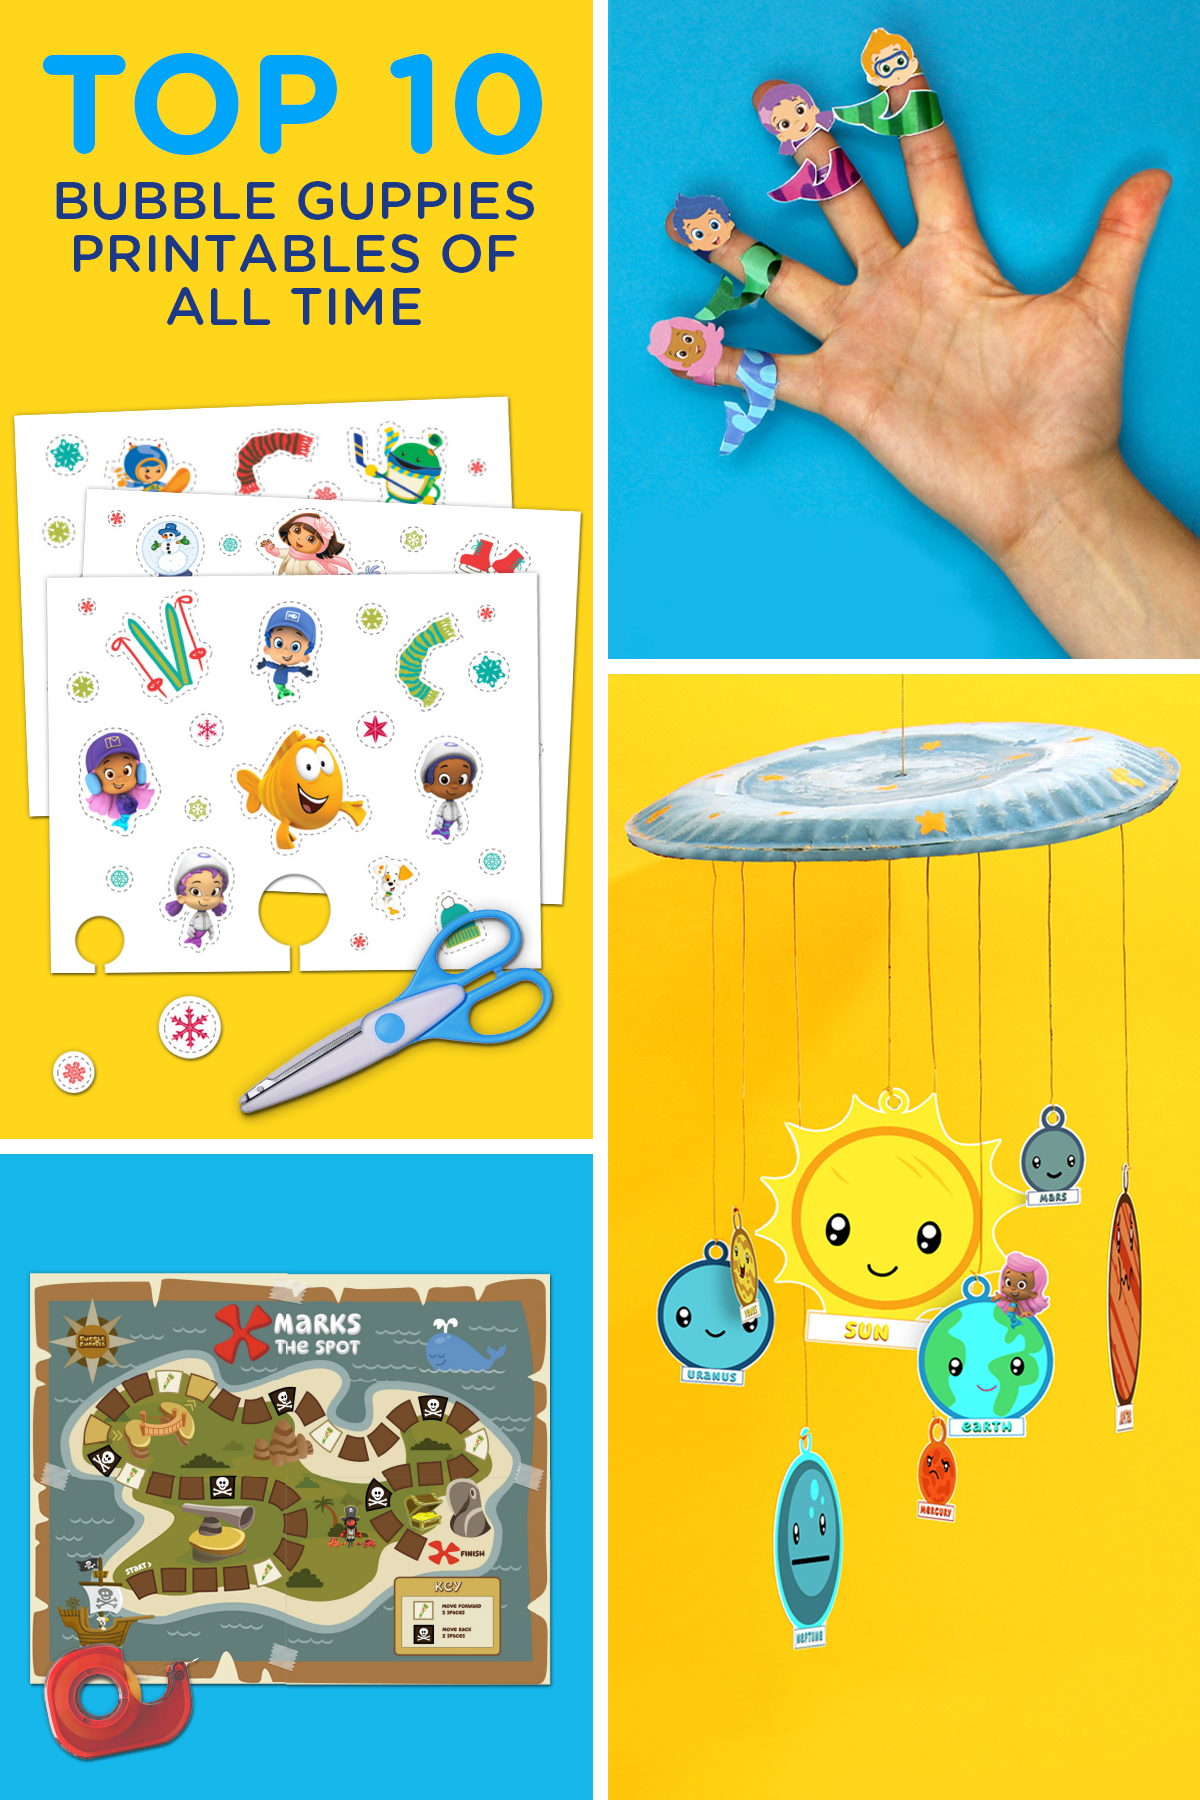 Bubble Guppies Top 10 Printables